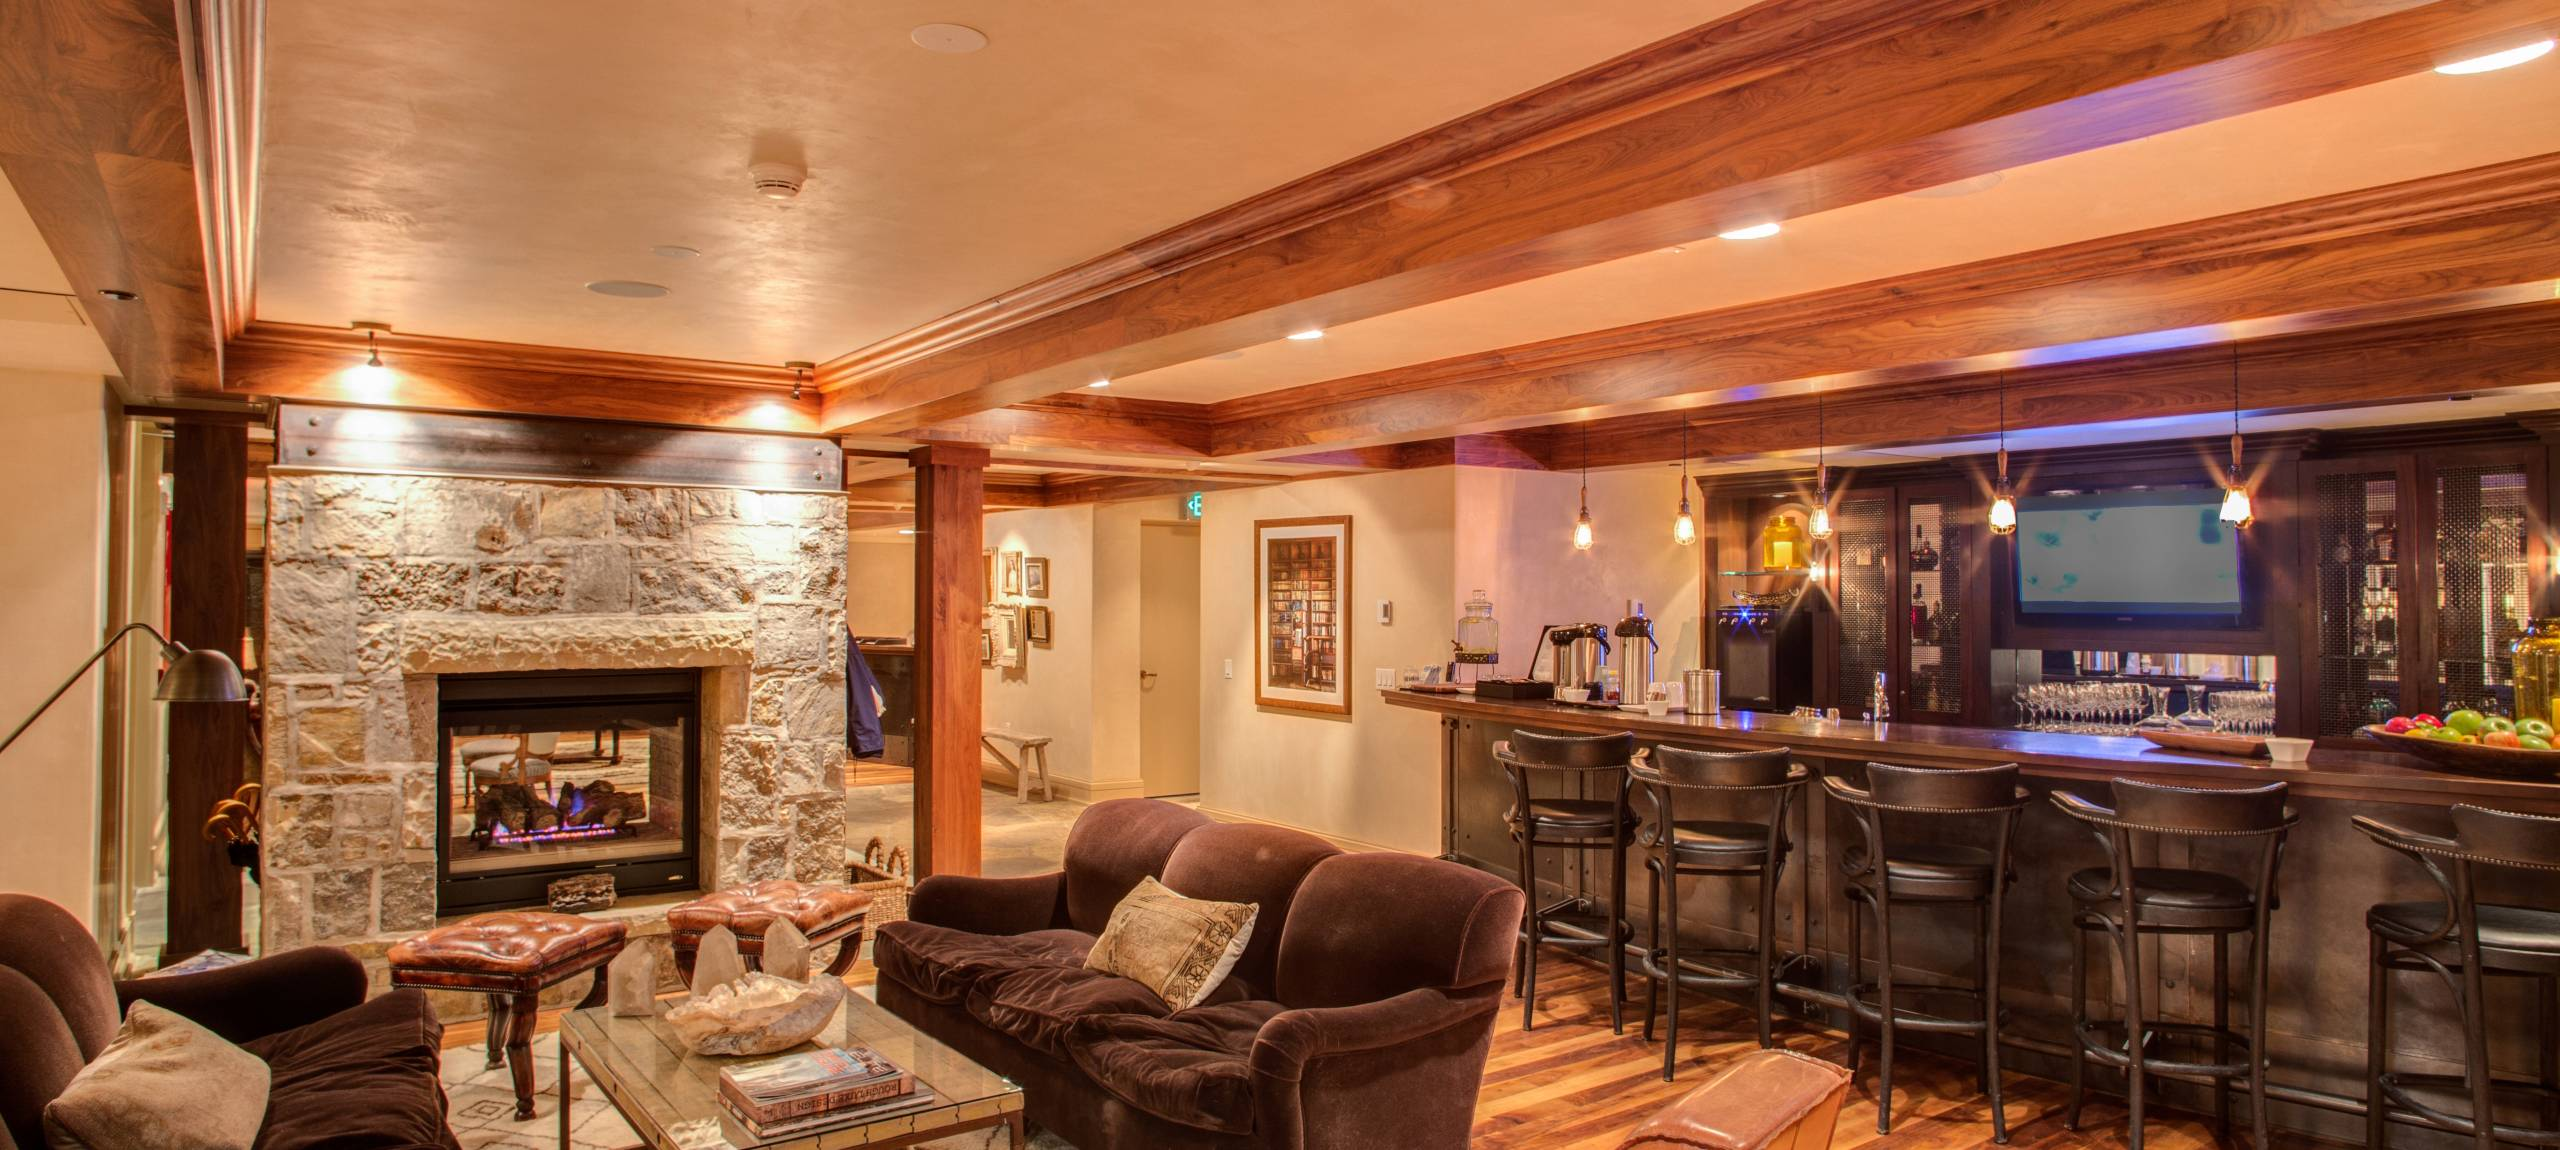 Telluride-Rentals-Cascades-Bar-and-seating